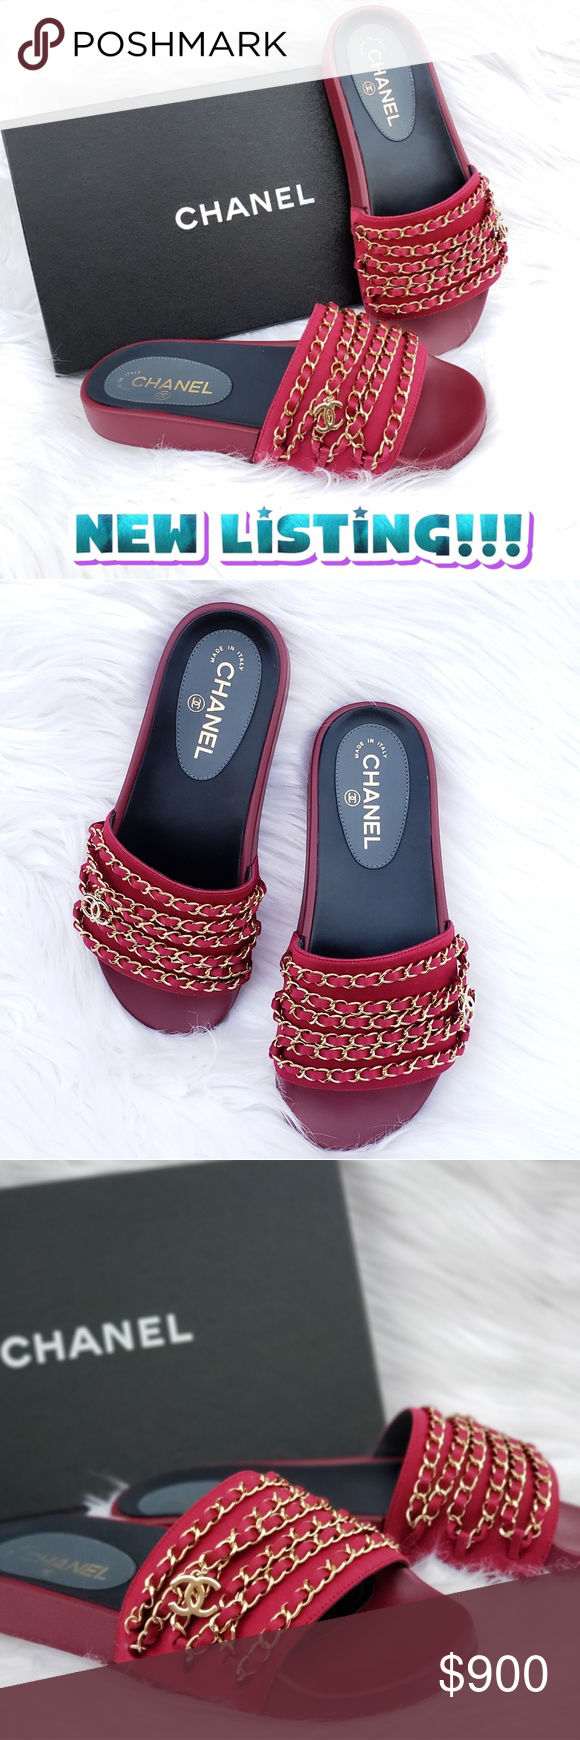 119853a91721 CHANEL CUBA TROPICONIC RED CHAIN SLIDE MULES 100% AUTHENTIC AND BRAND NEW  CHANEL CUBA TROPICONIC